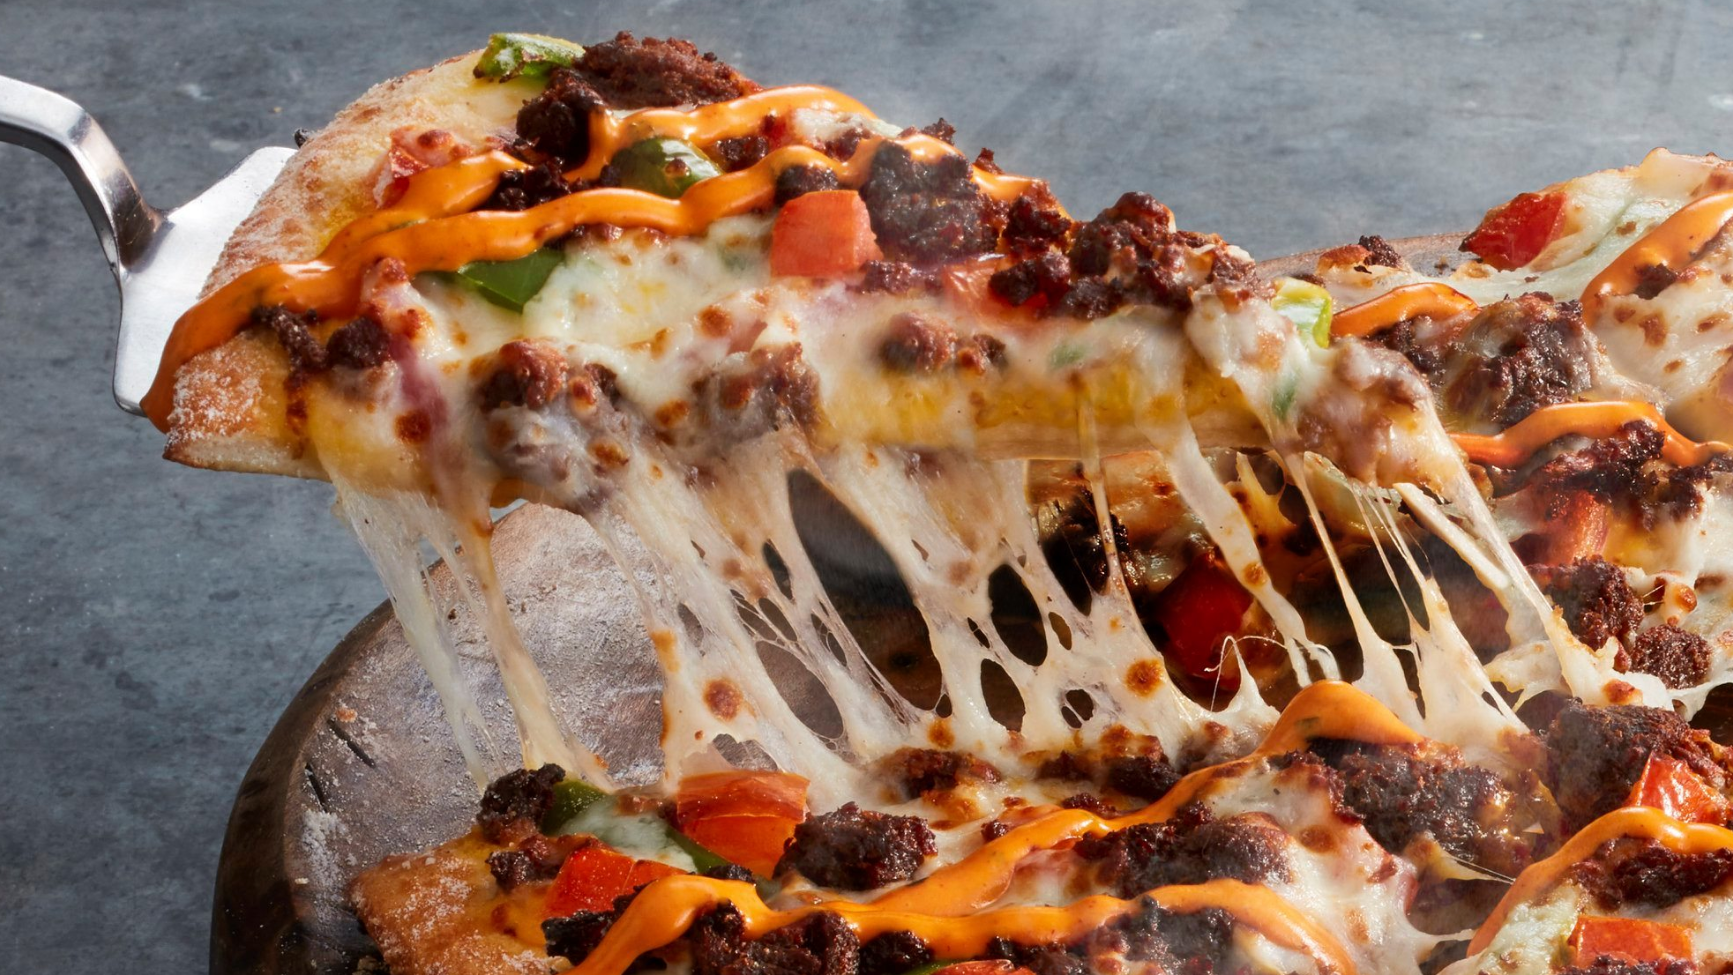 Dominos are set to launch three new vegan pizzas this year